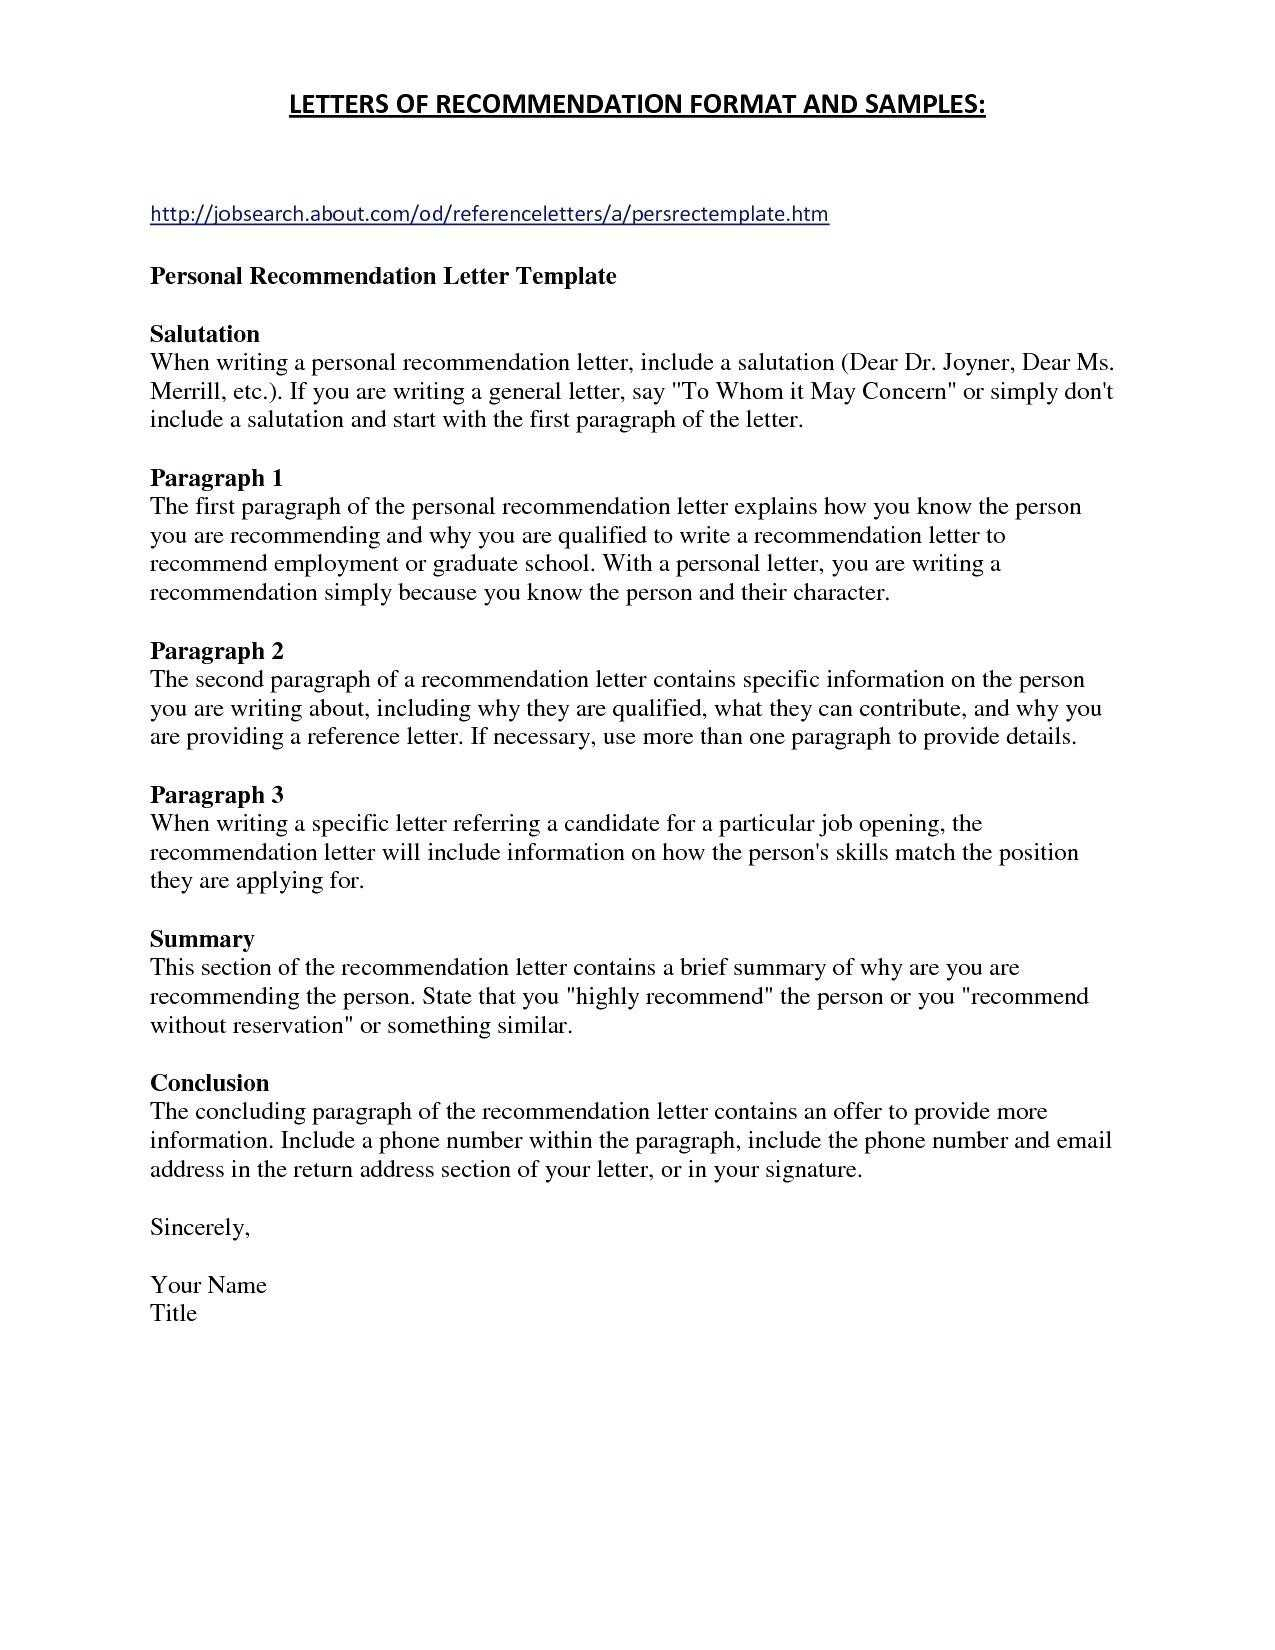 disclosure letter template example-Non Disclosure Statement Template with Business Disclosure Letter Sample Awesome Non Disclosure Statement 10-k